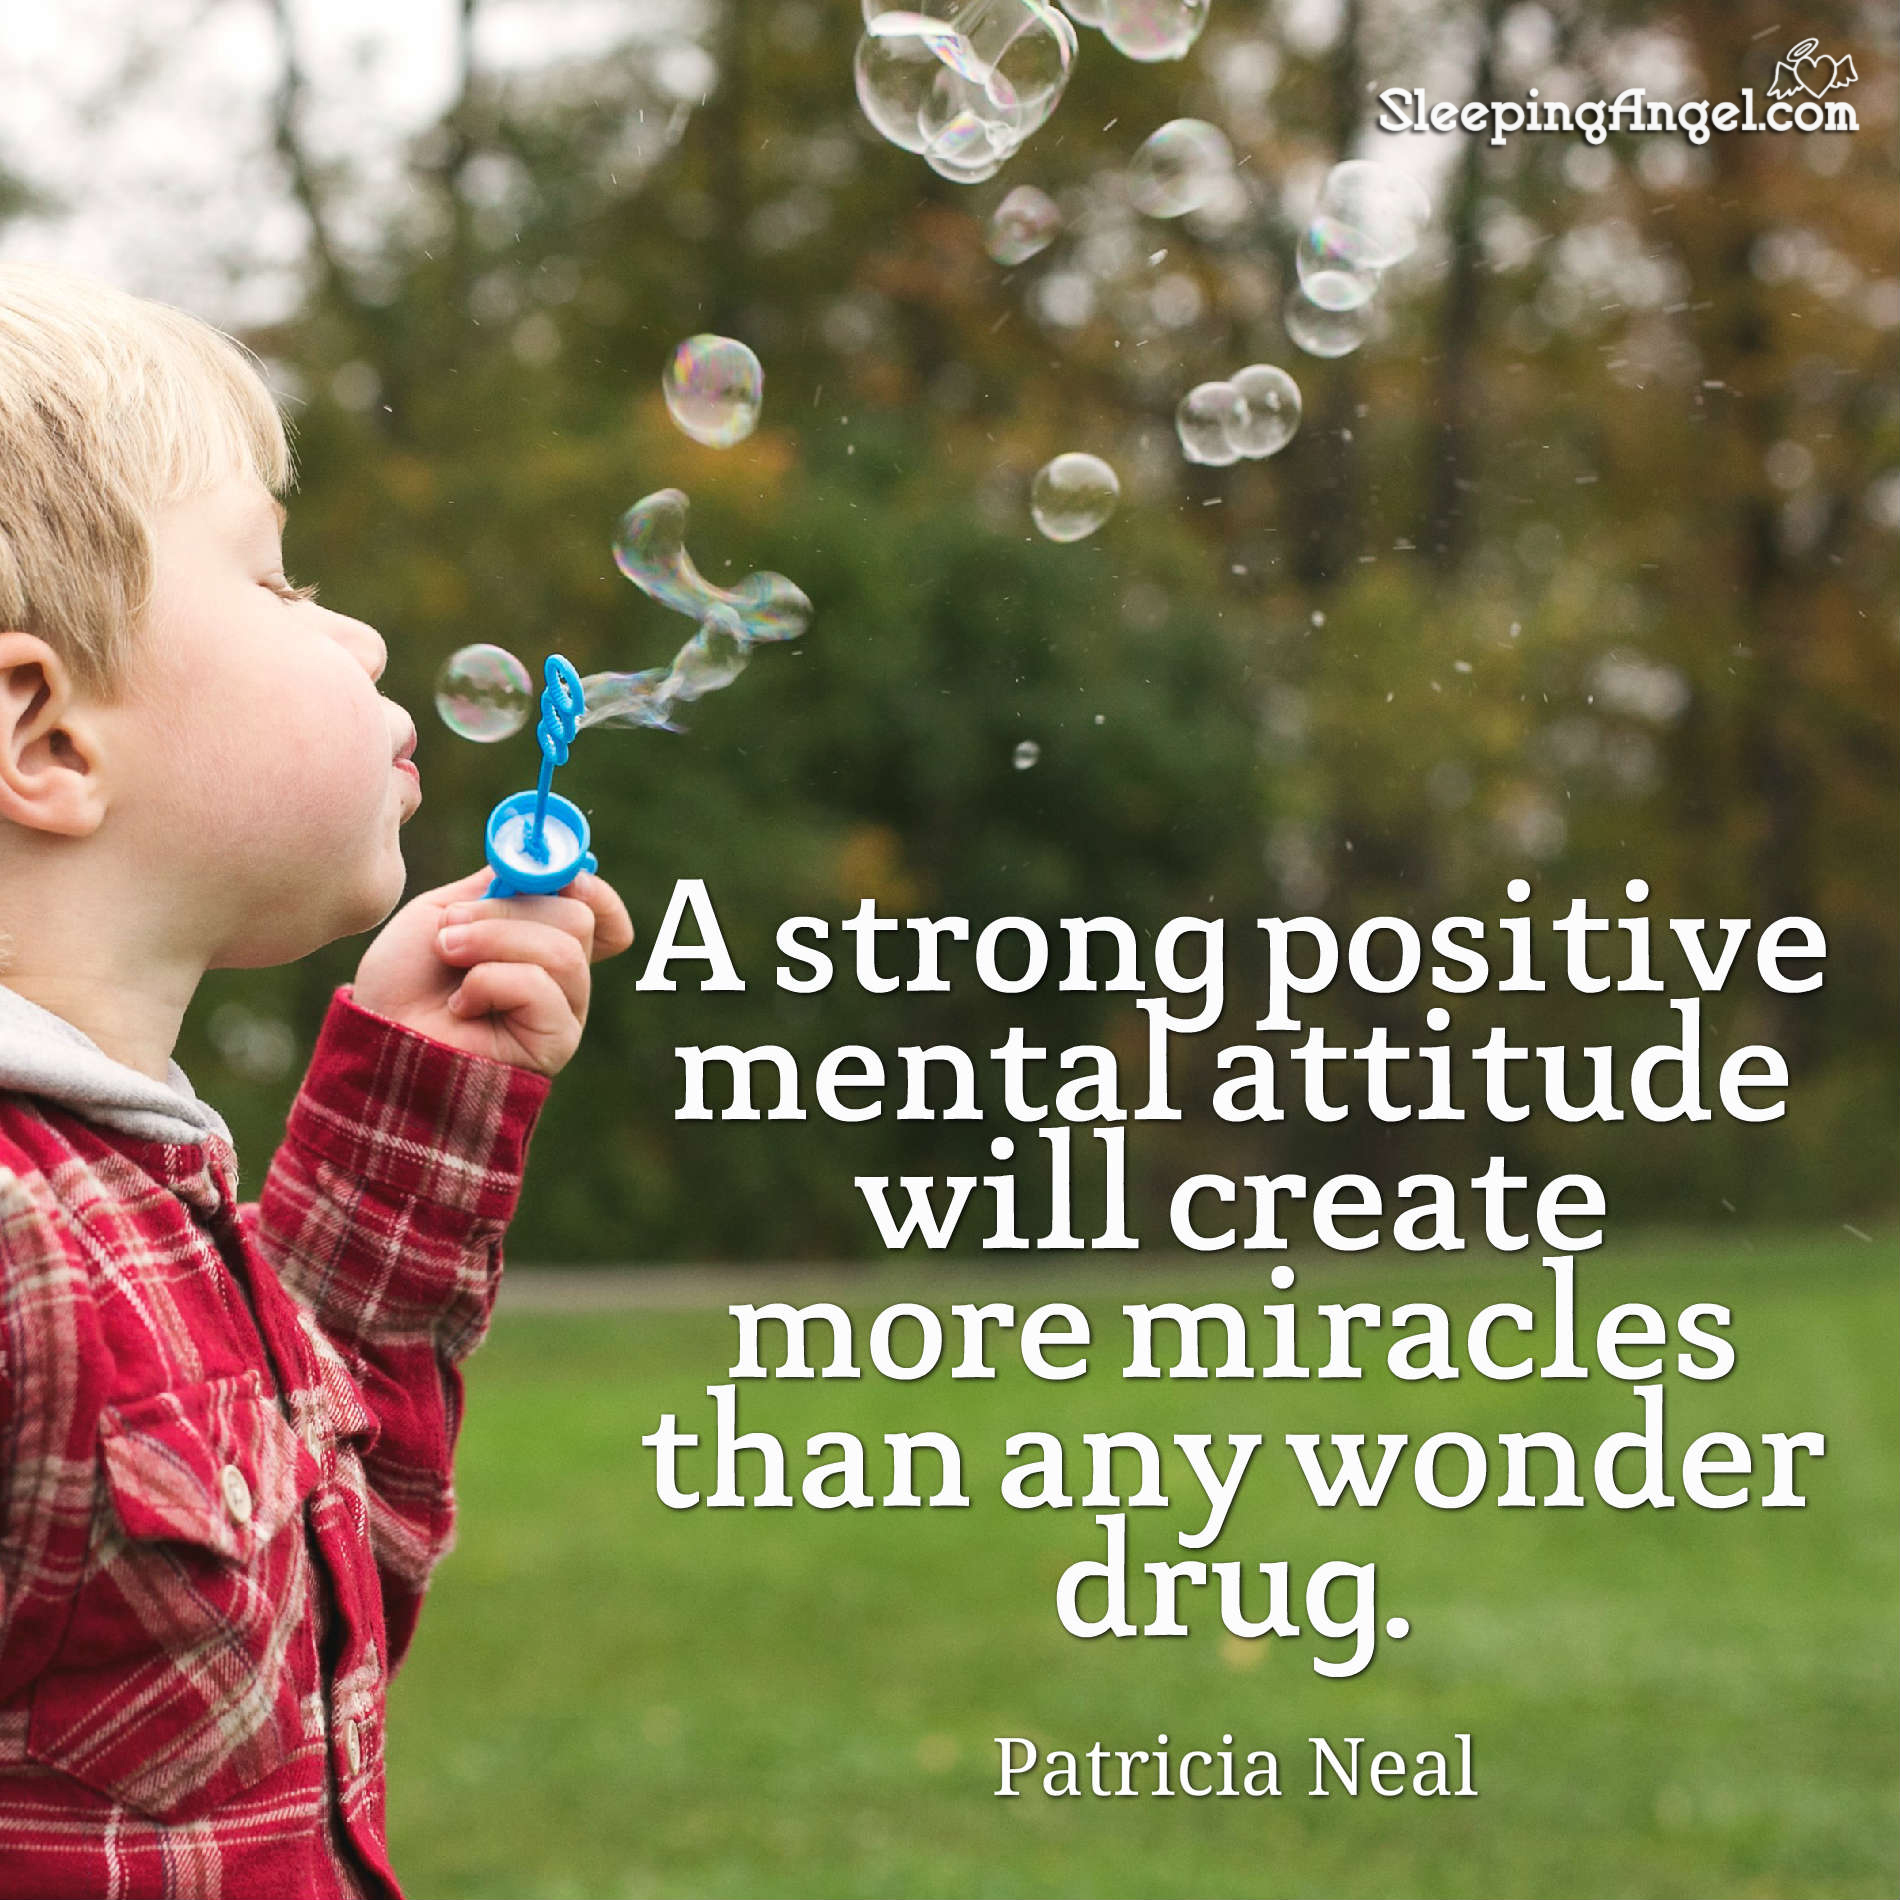 Patricia Neal Quote